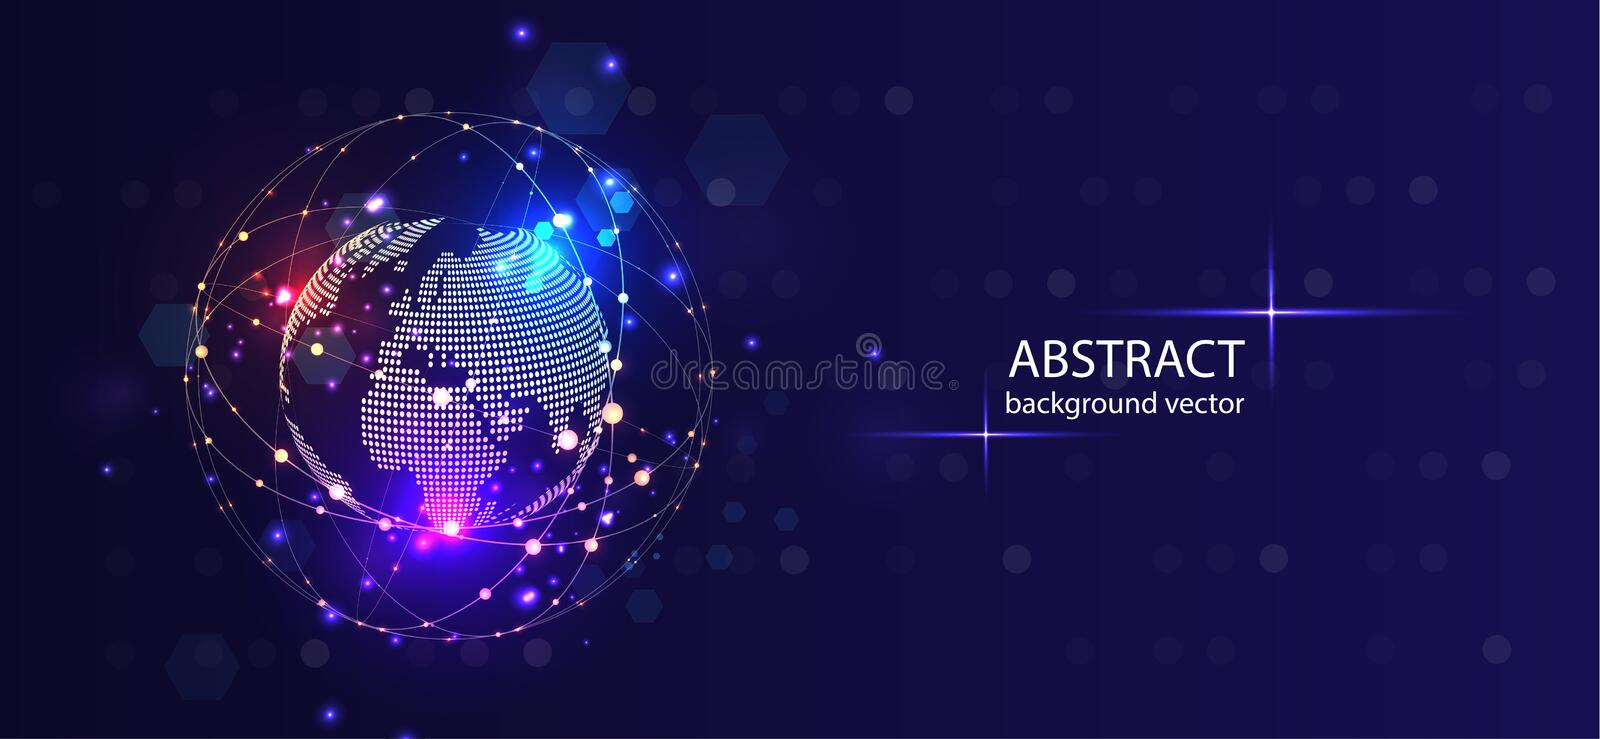 Abstract technology vector background.For business, science, technology design vector illustration